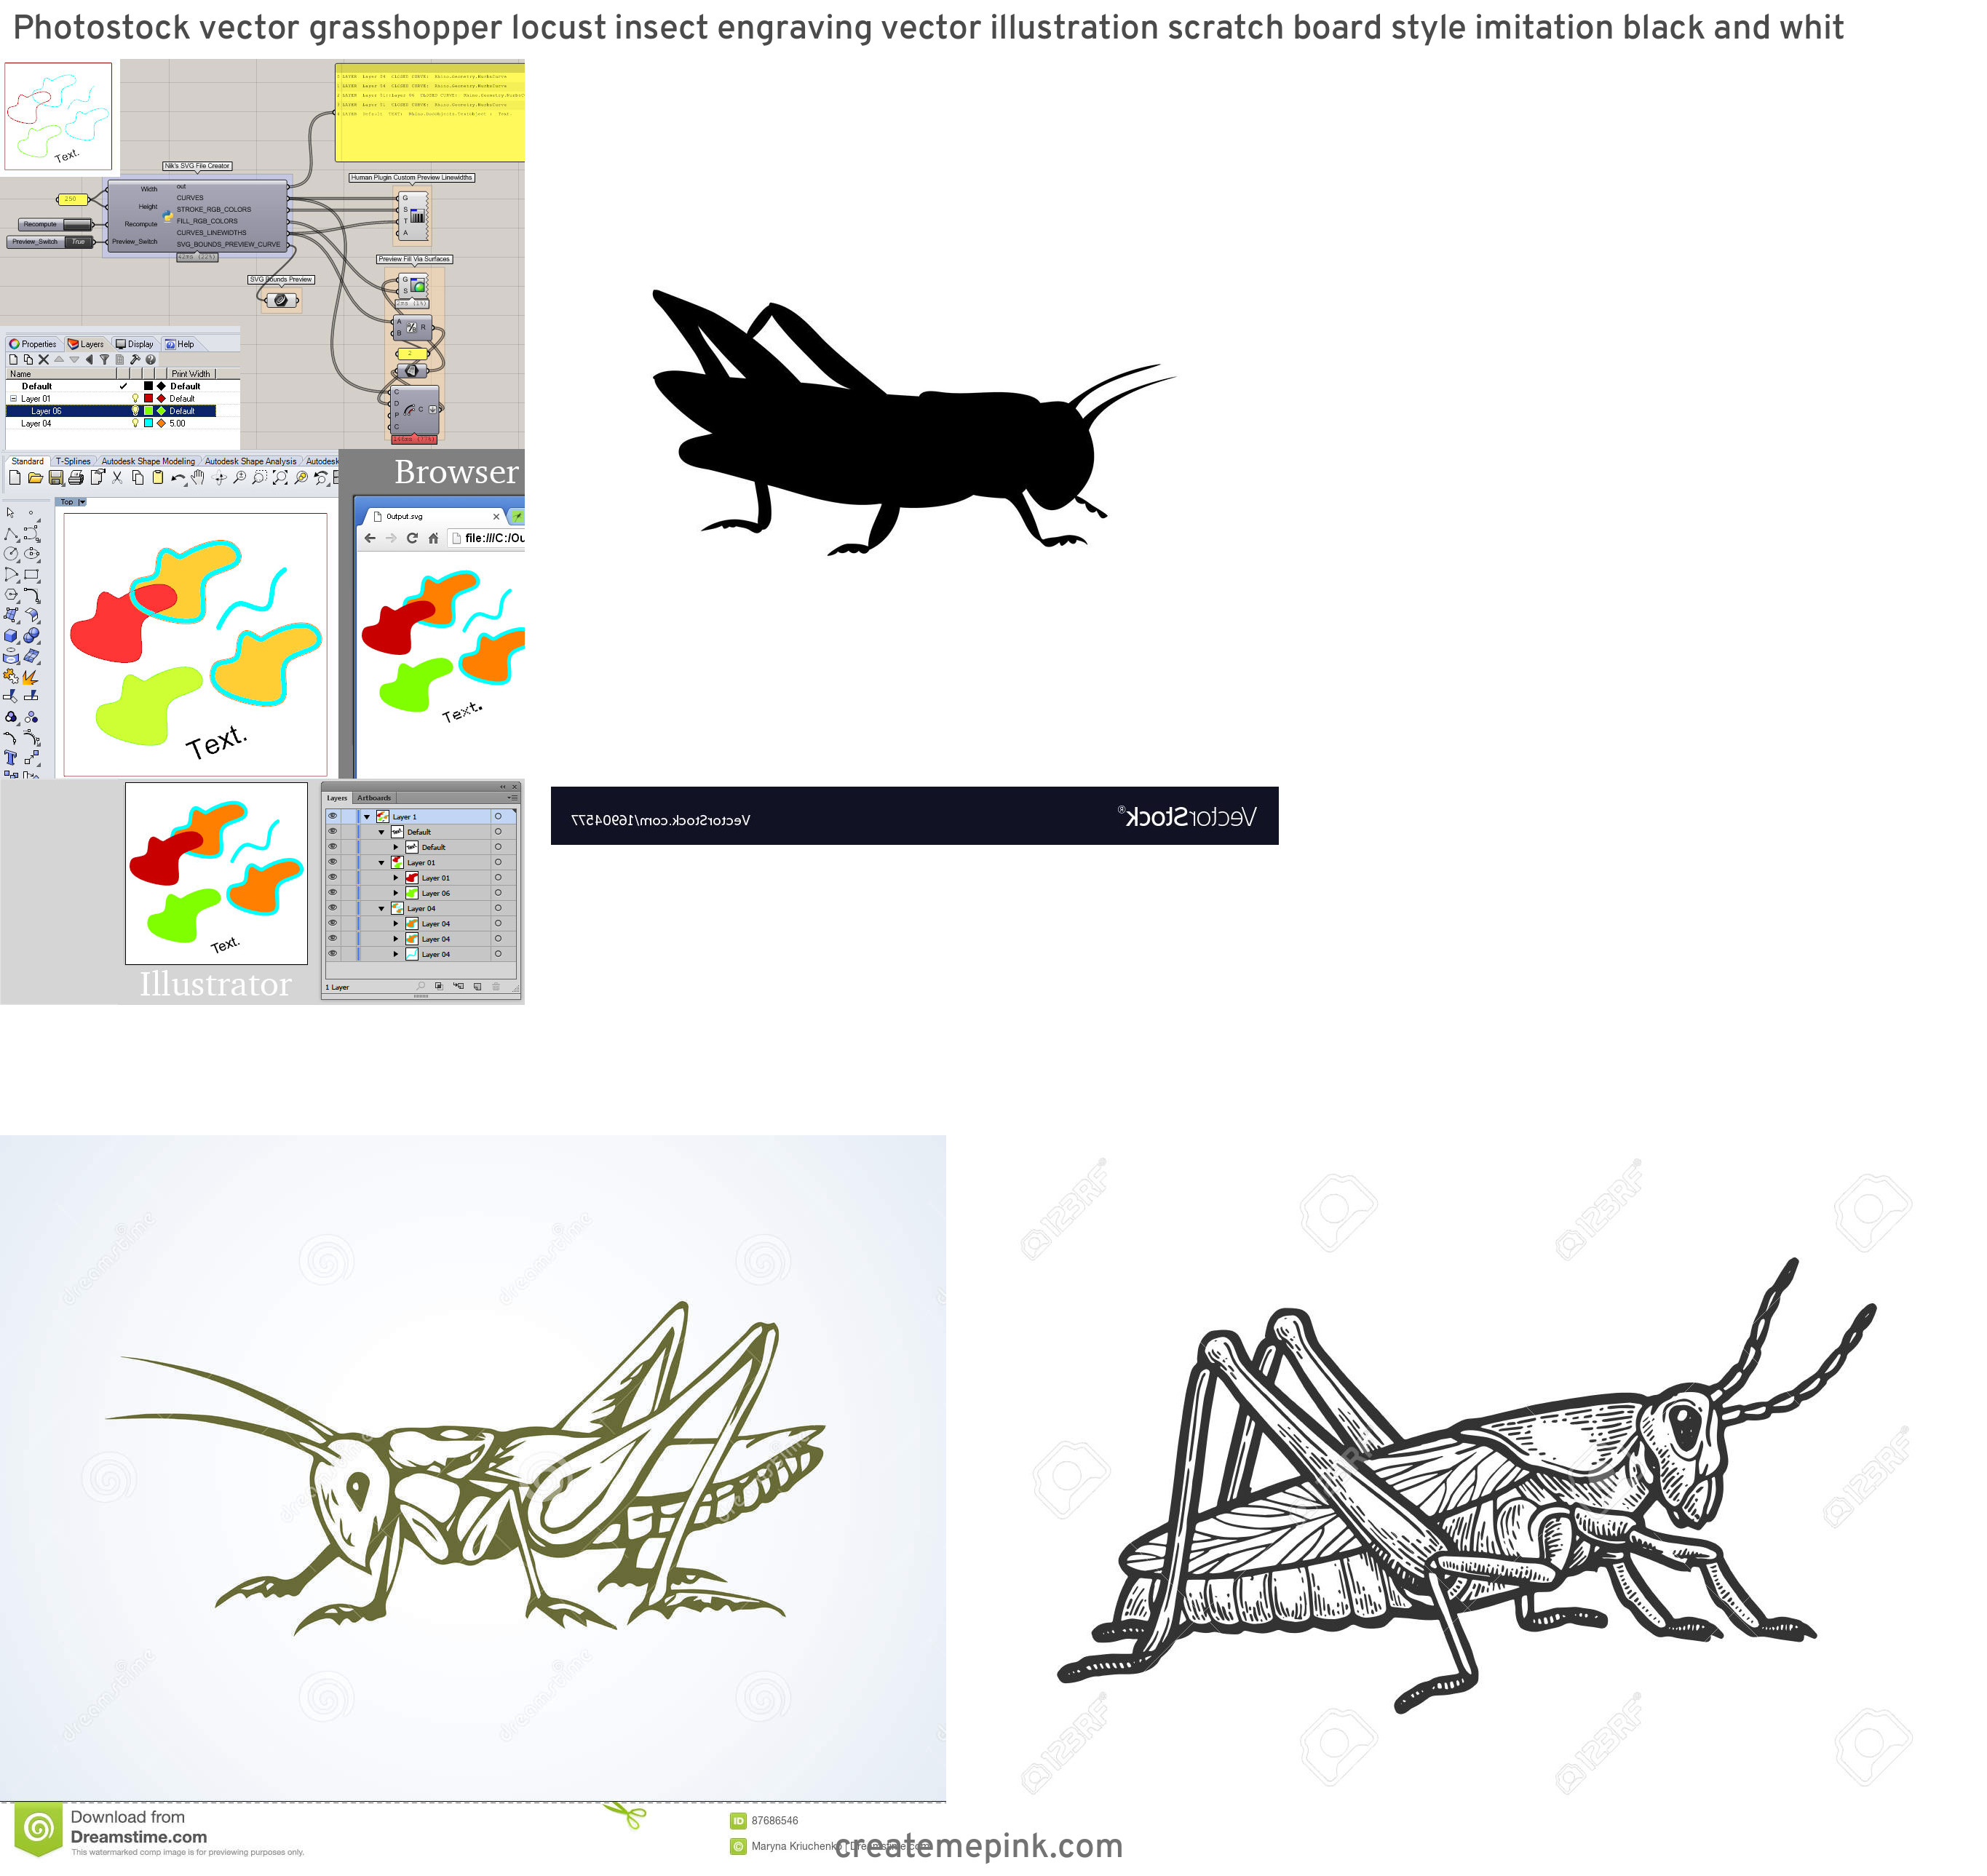 Grasshopper Vector Graphics: Photostock Vector Grasshopper Locust Insect Engraving Vector Illustration Scratch Board Style Imitation Black And Whit